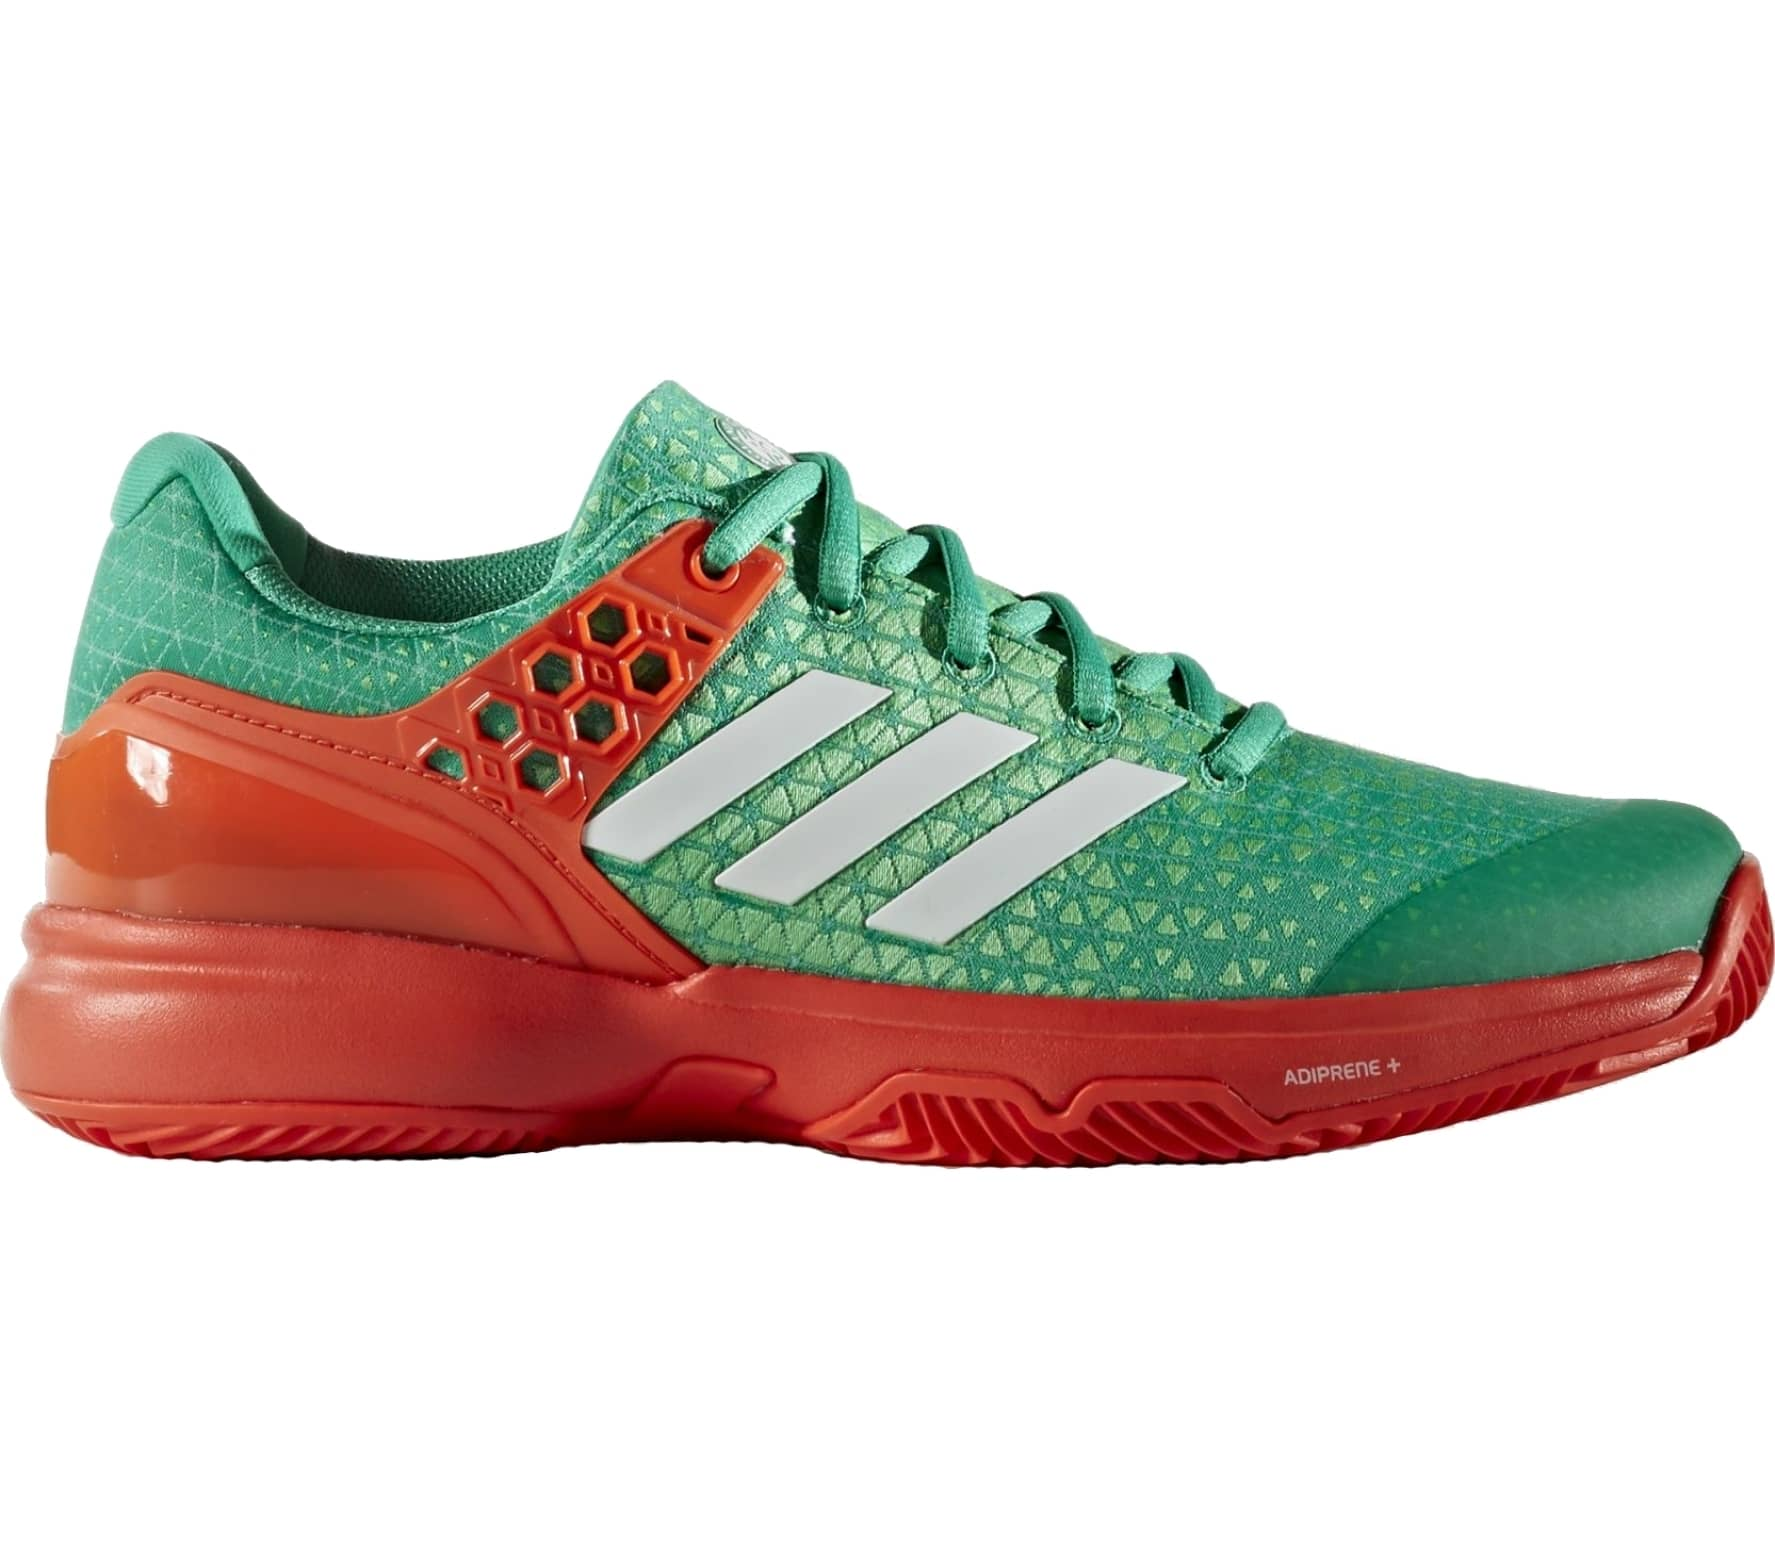 d552f3835 Adidas - Adizero Ubersonic 2 Clay Textile women s tennis shoes (green red)